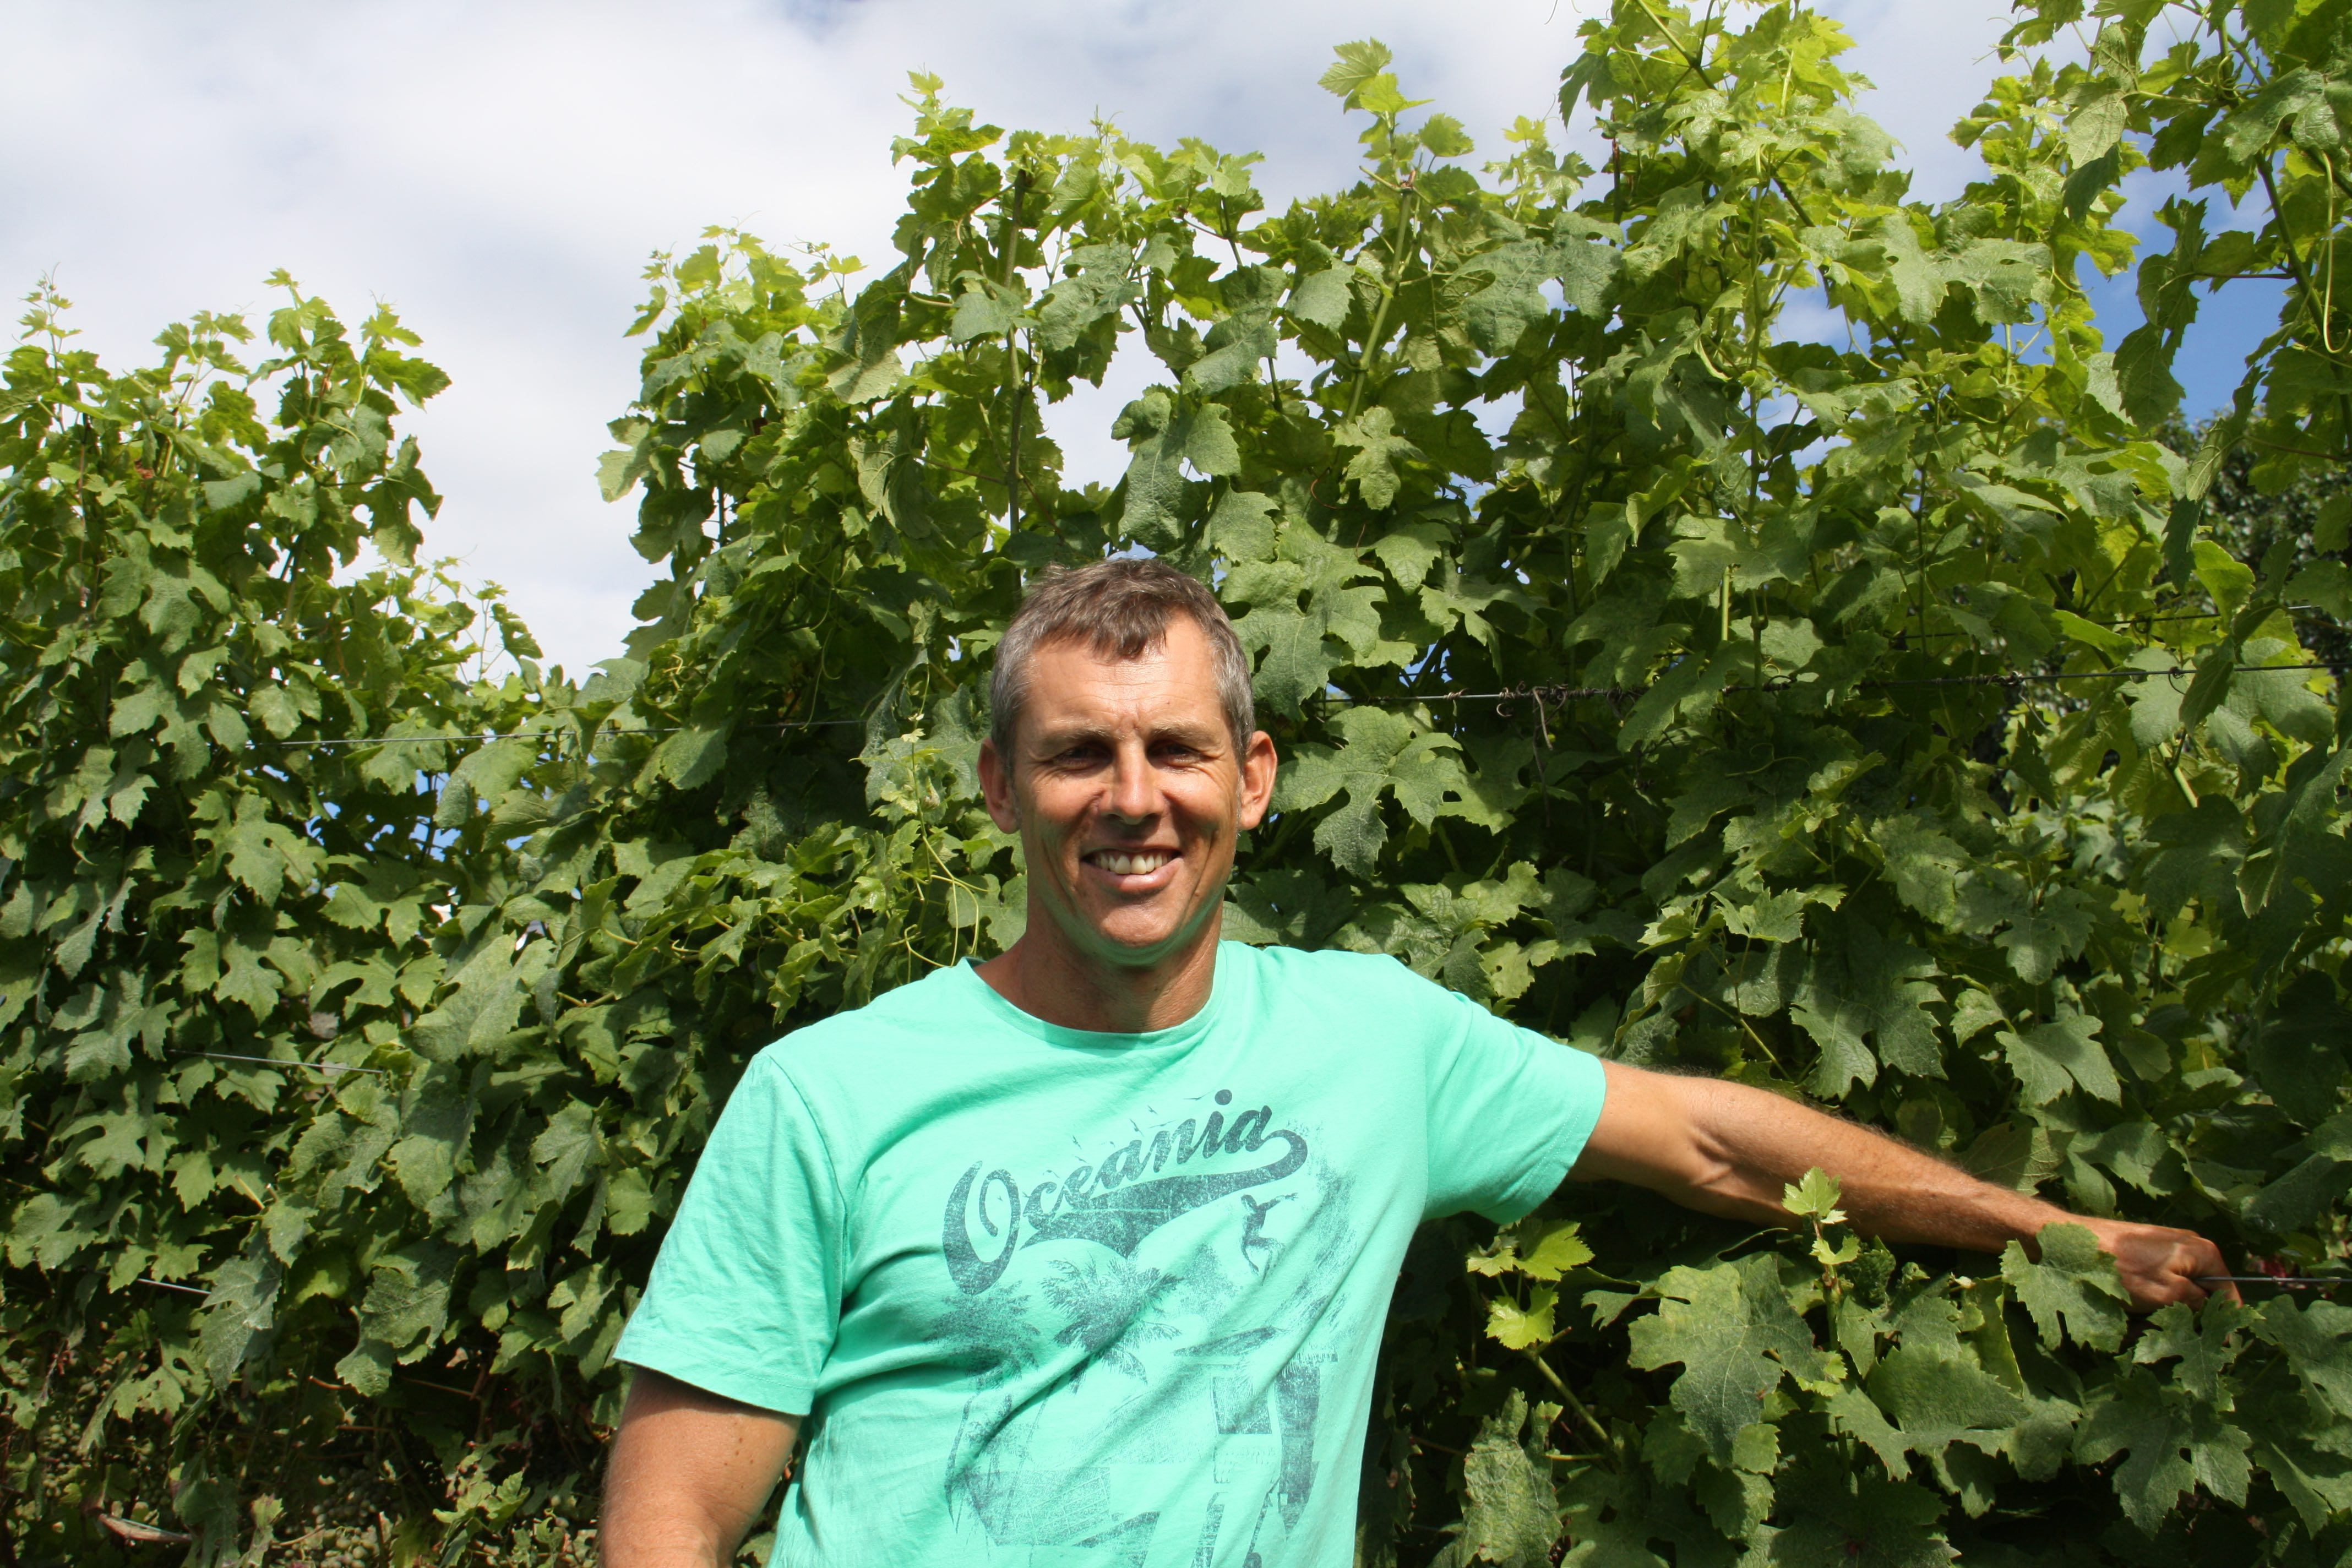 David Babich is very aware of the family traditions that he carries on in his winemaking